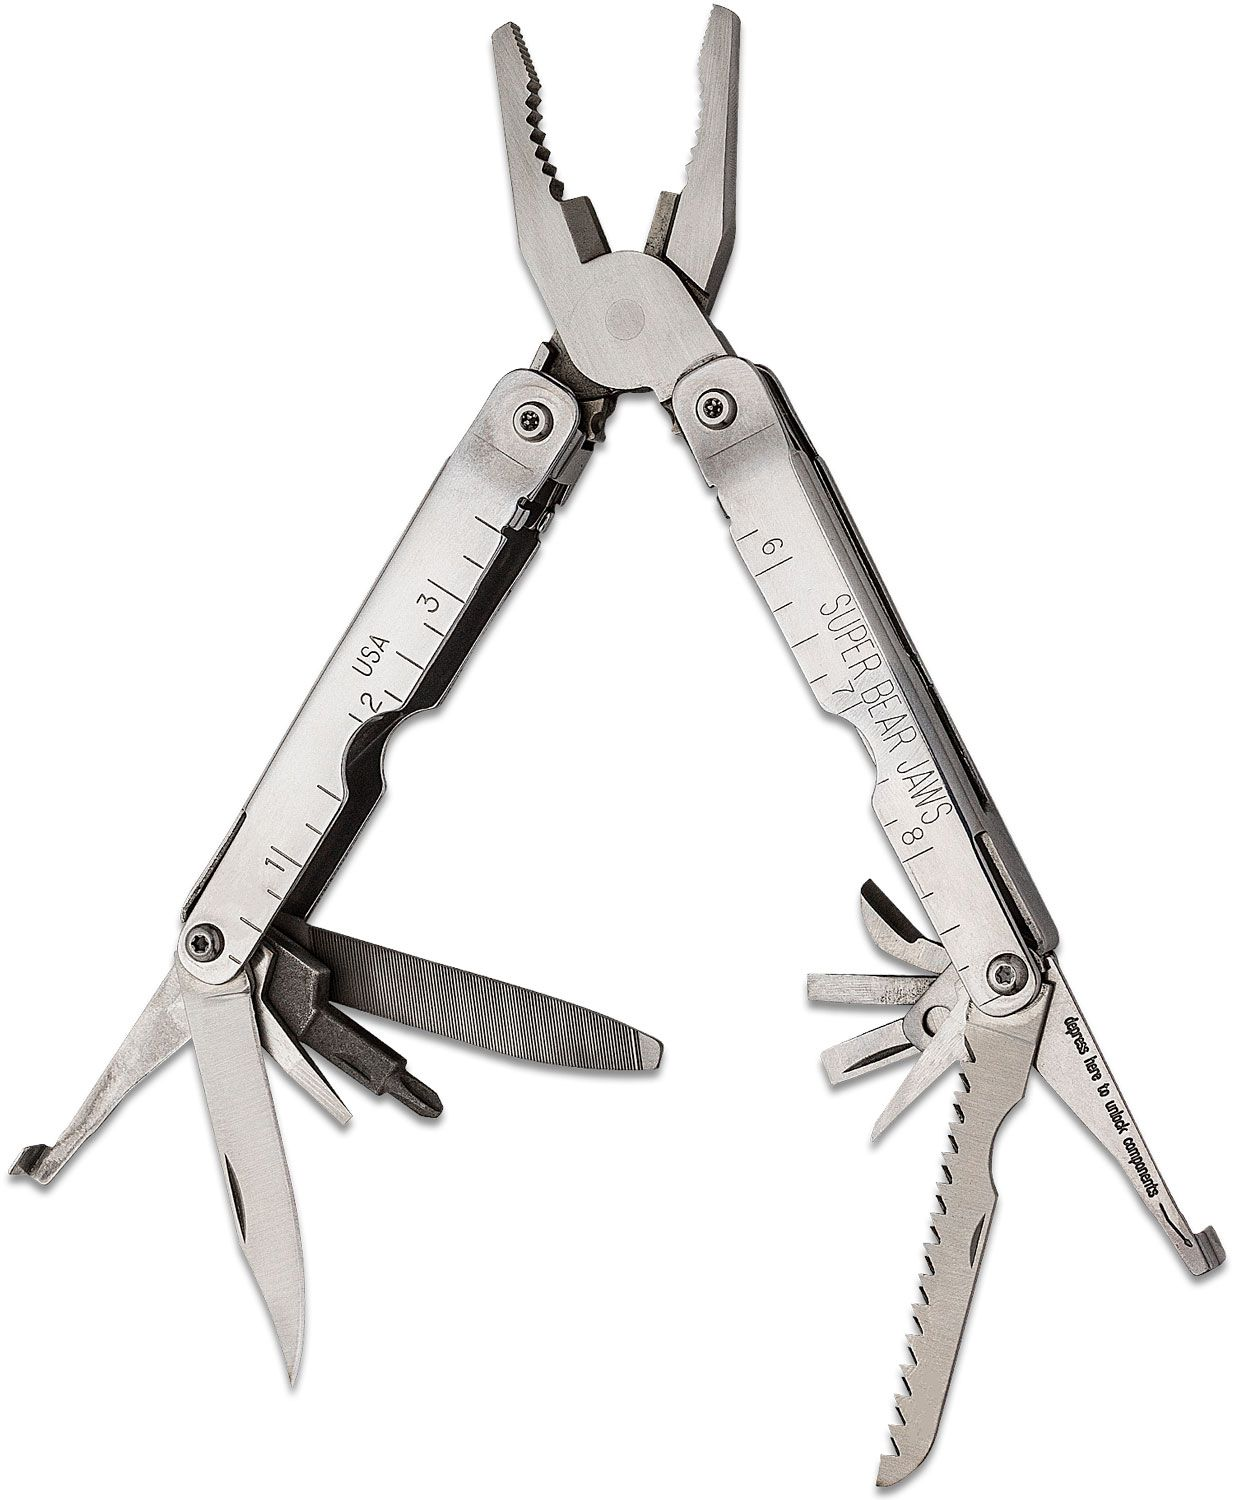 Bear & Son Super Bear Jaws Locking Components Multi-Tool 4-1/2 inch Closed